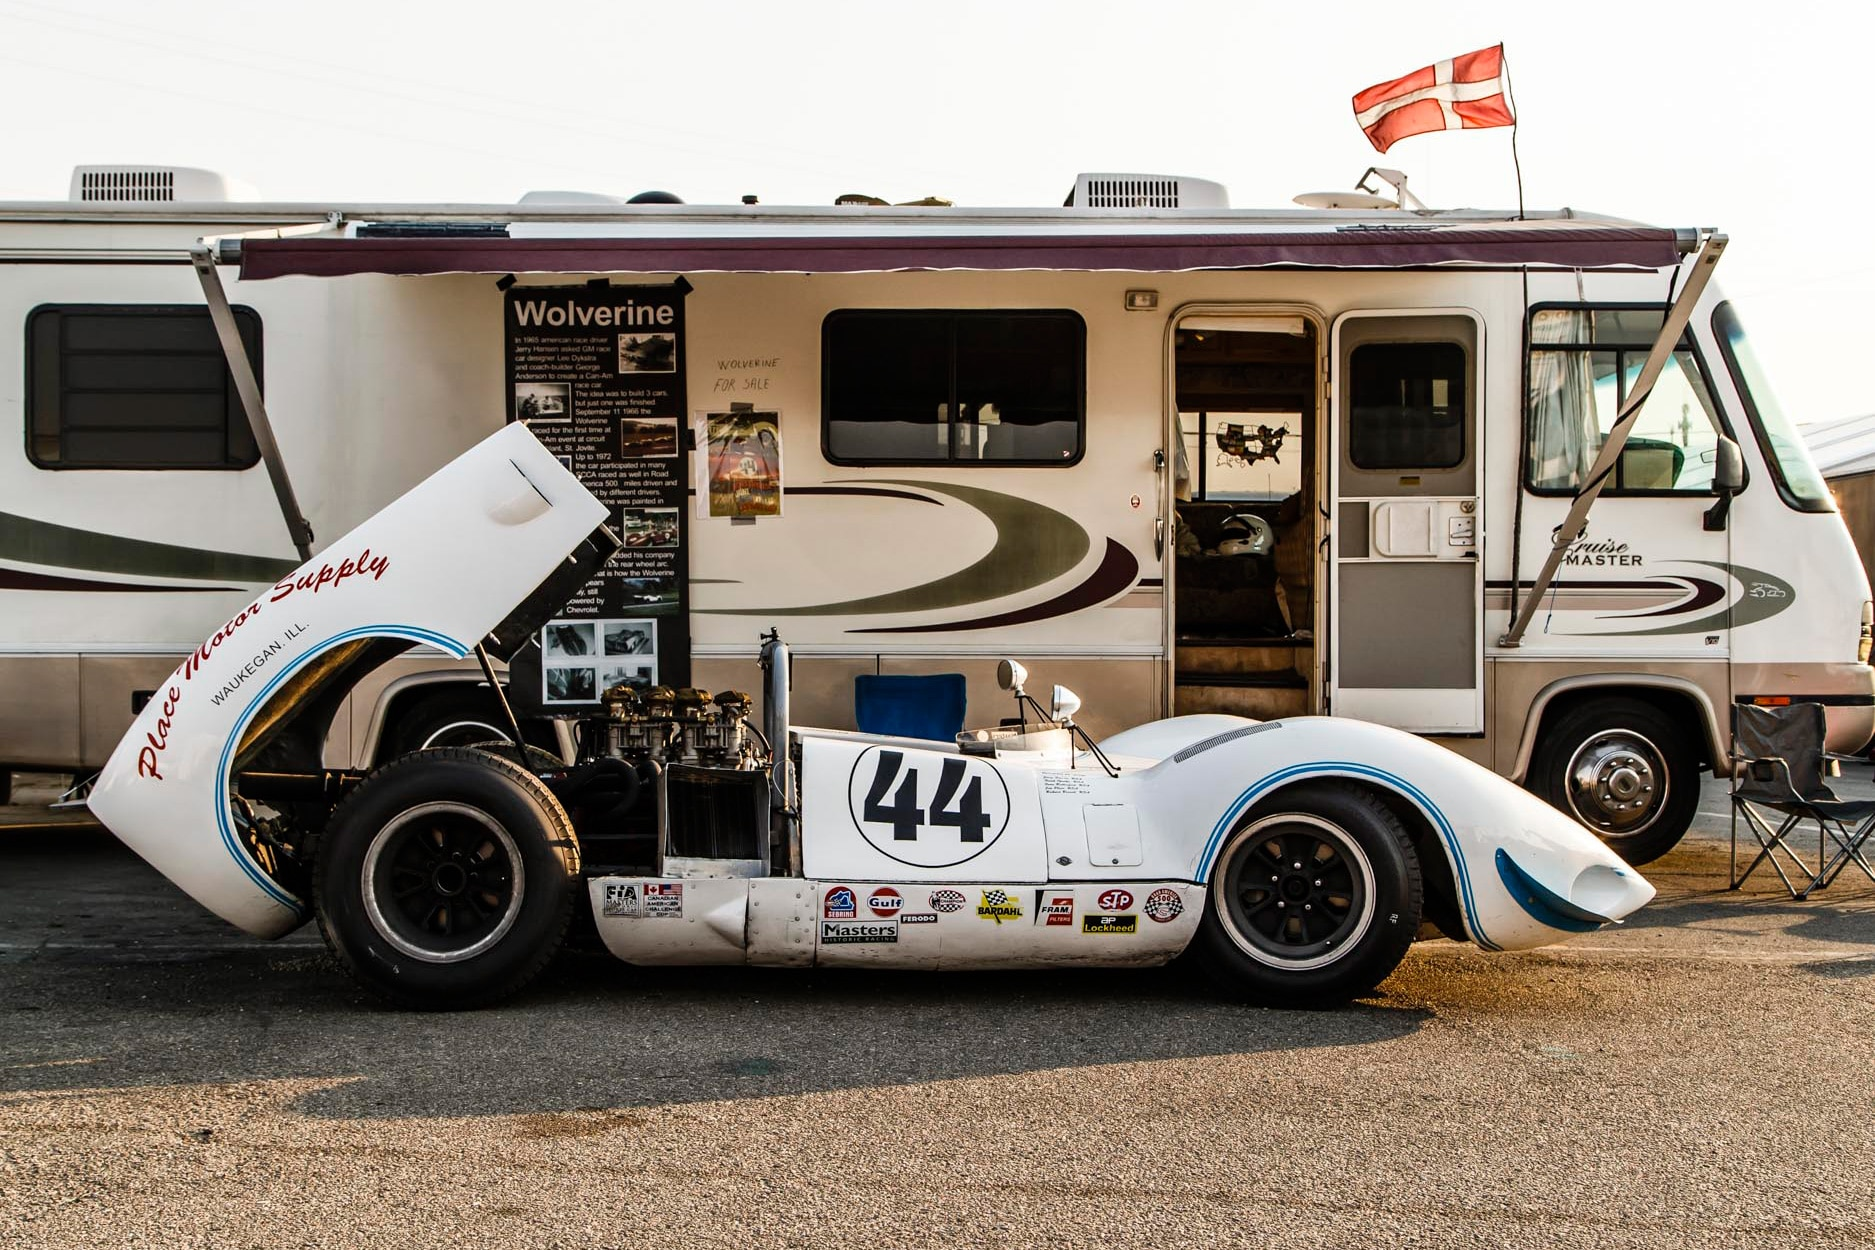 A Brief History of the 1966 Wolverine Can Am Race Car